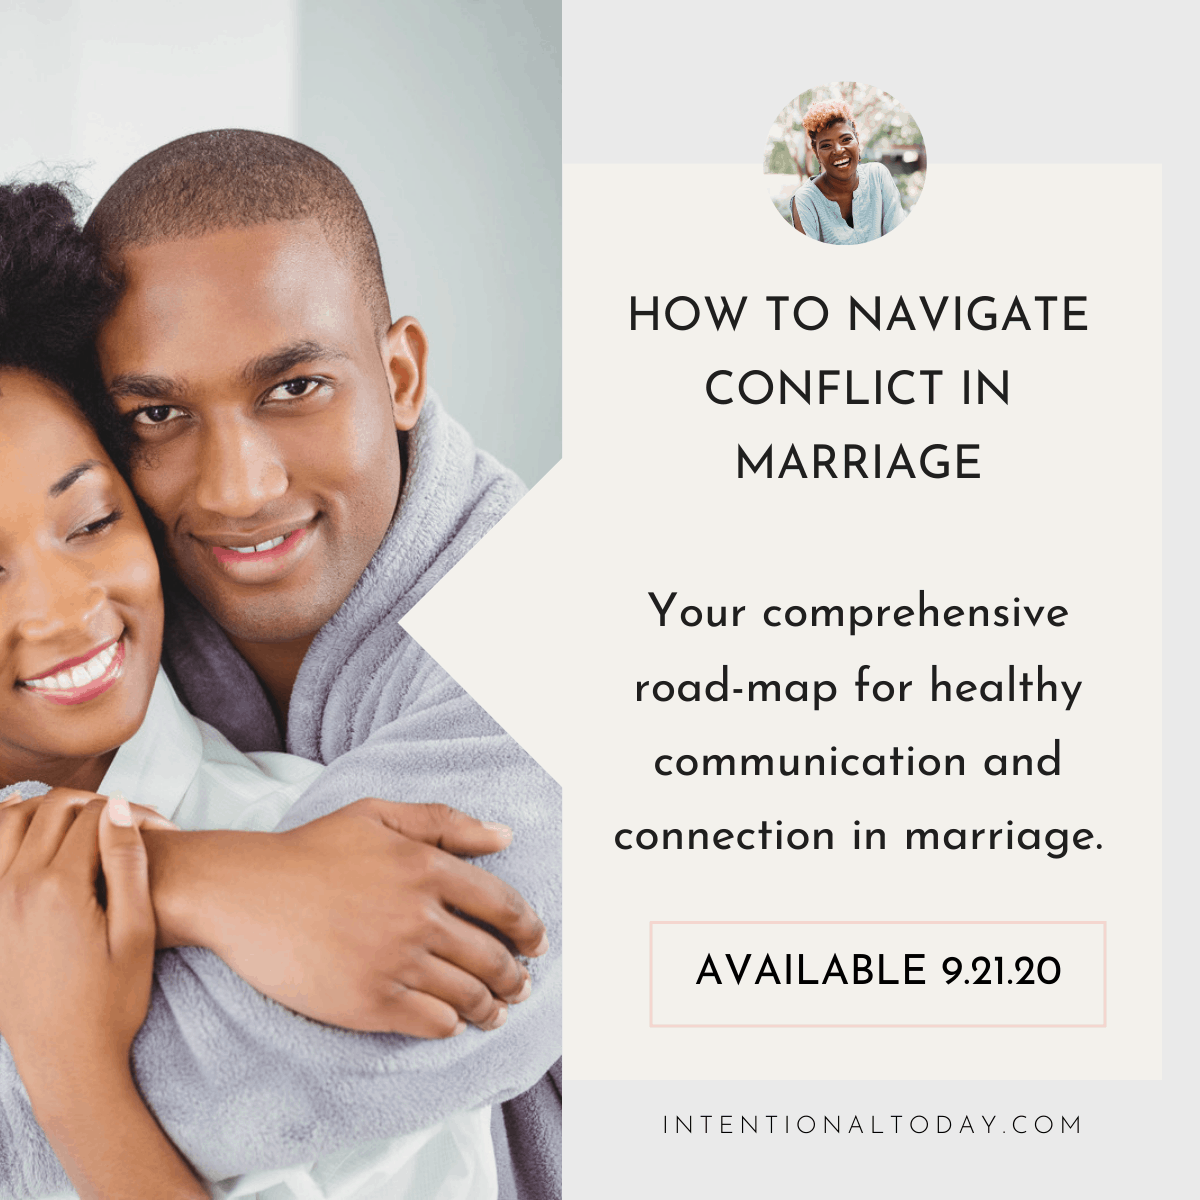 How to navigate conflict in marriage so you can heal your connection and solve marriage problems